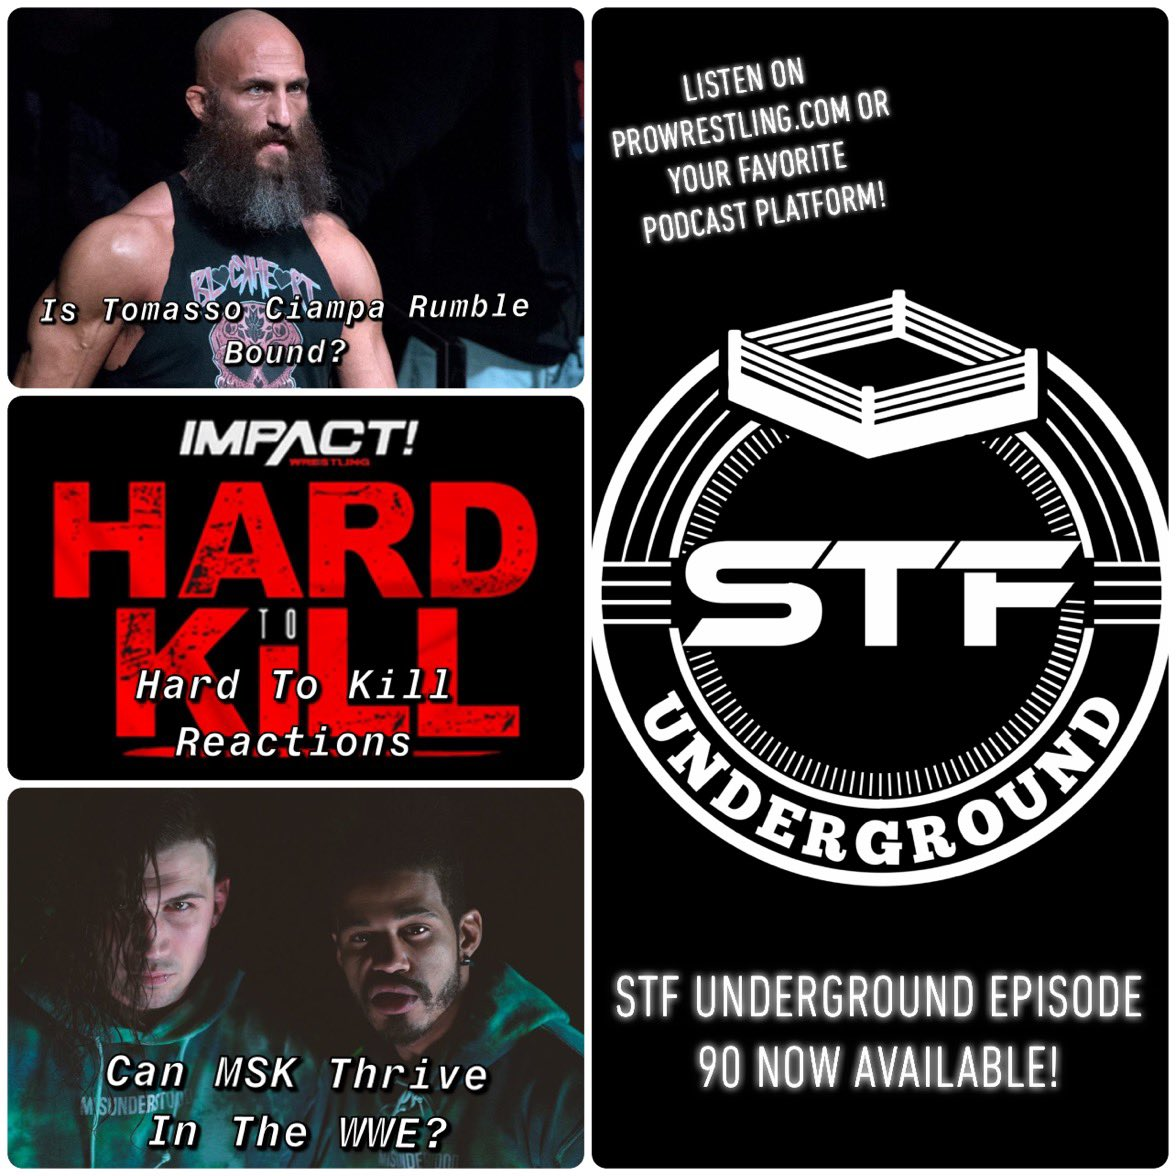 It's out!  Episode 90 is here, and there are a lot of hot topics, including #AEWDynamite's lackluster episode, where Ciampa goes from here, and the Dusty Classic! Listen now wherever you find podcasts! #NXT #ImpactWrestling #WWE #AEW #Wrestling